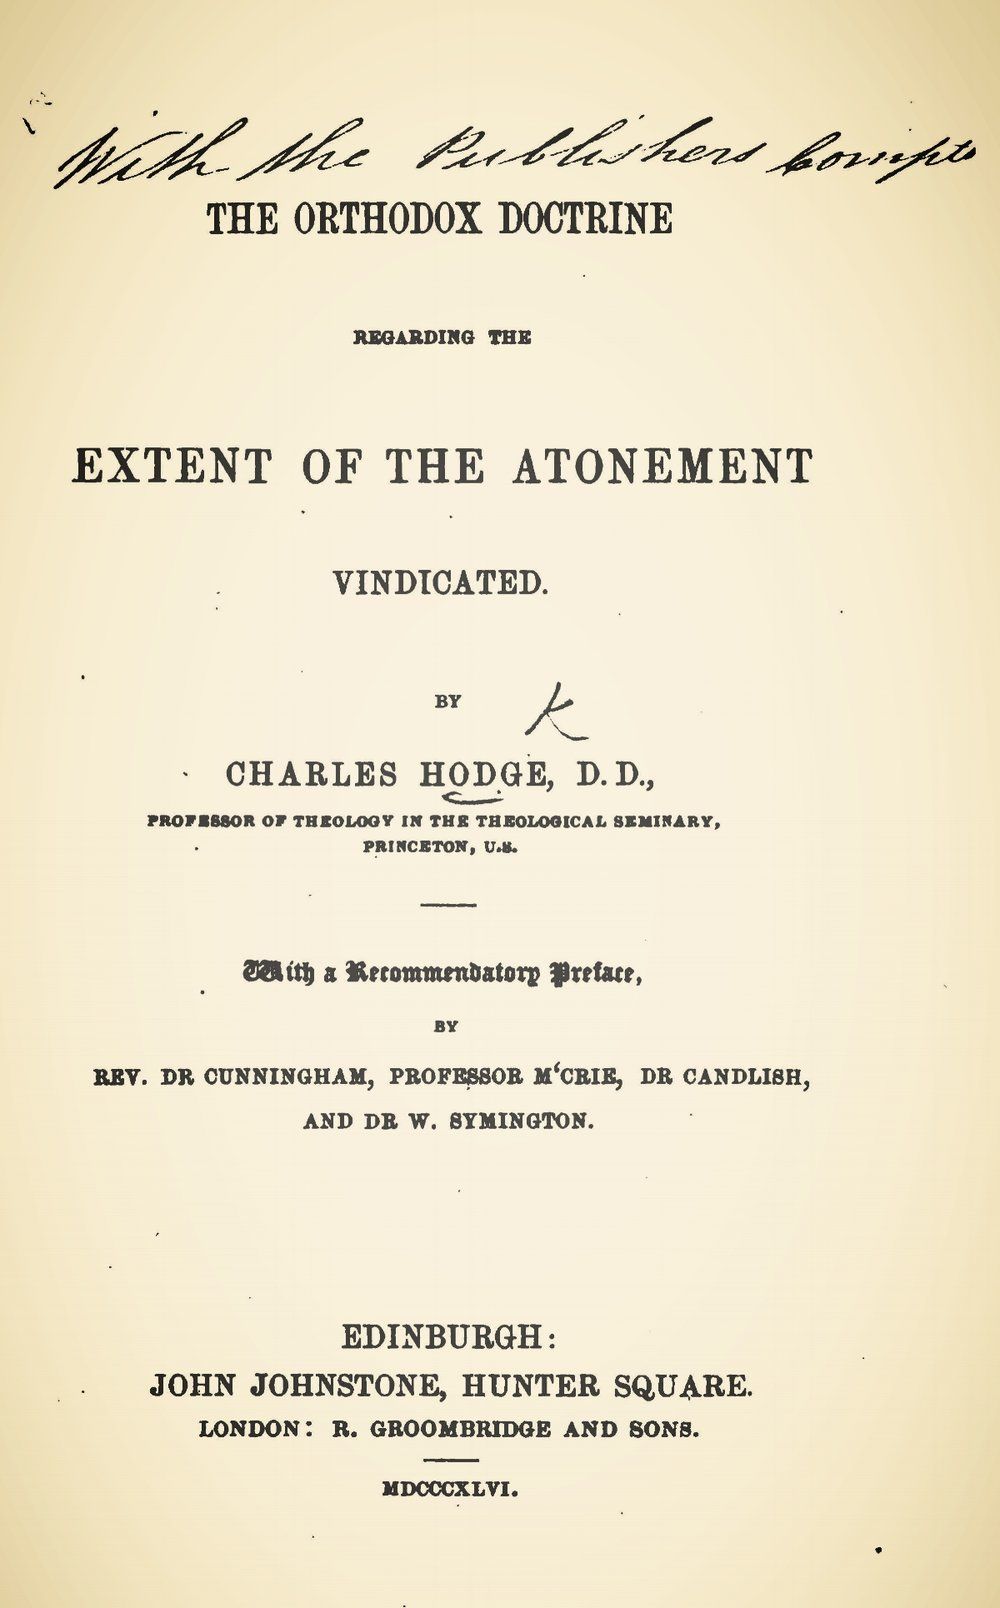 Hodge, Charles, The Orthodox Doctrine Regarding the Extent of the Atonement Title Page.jpg